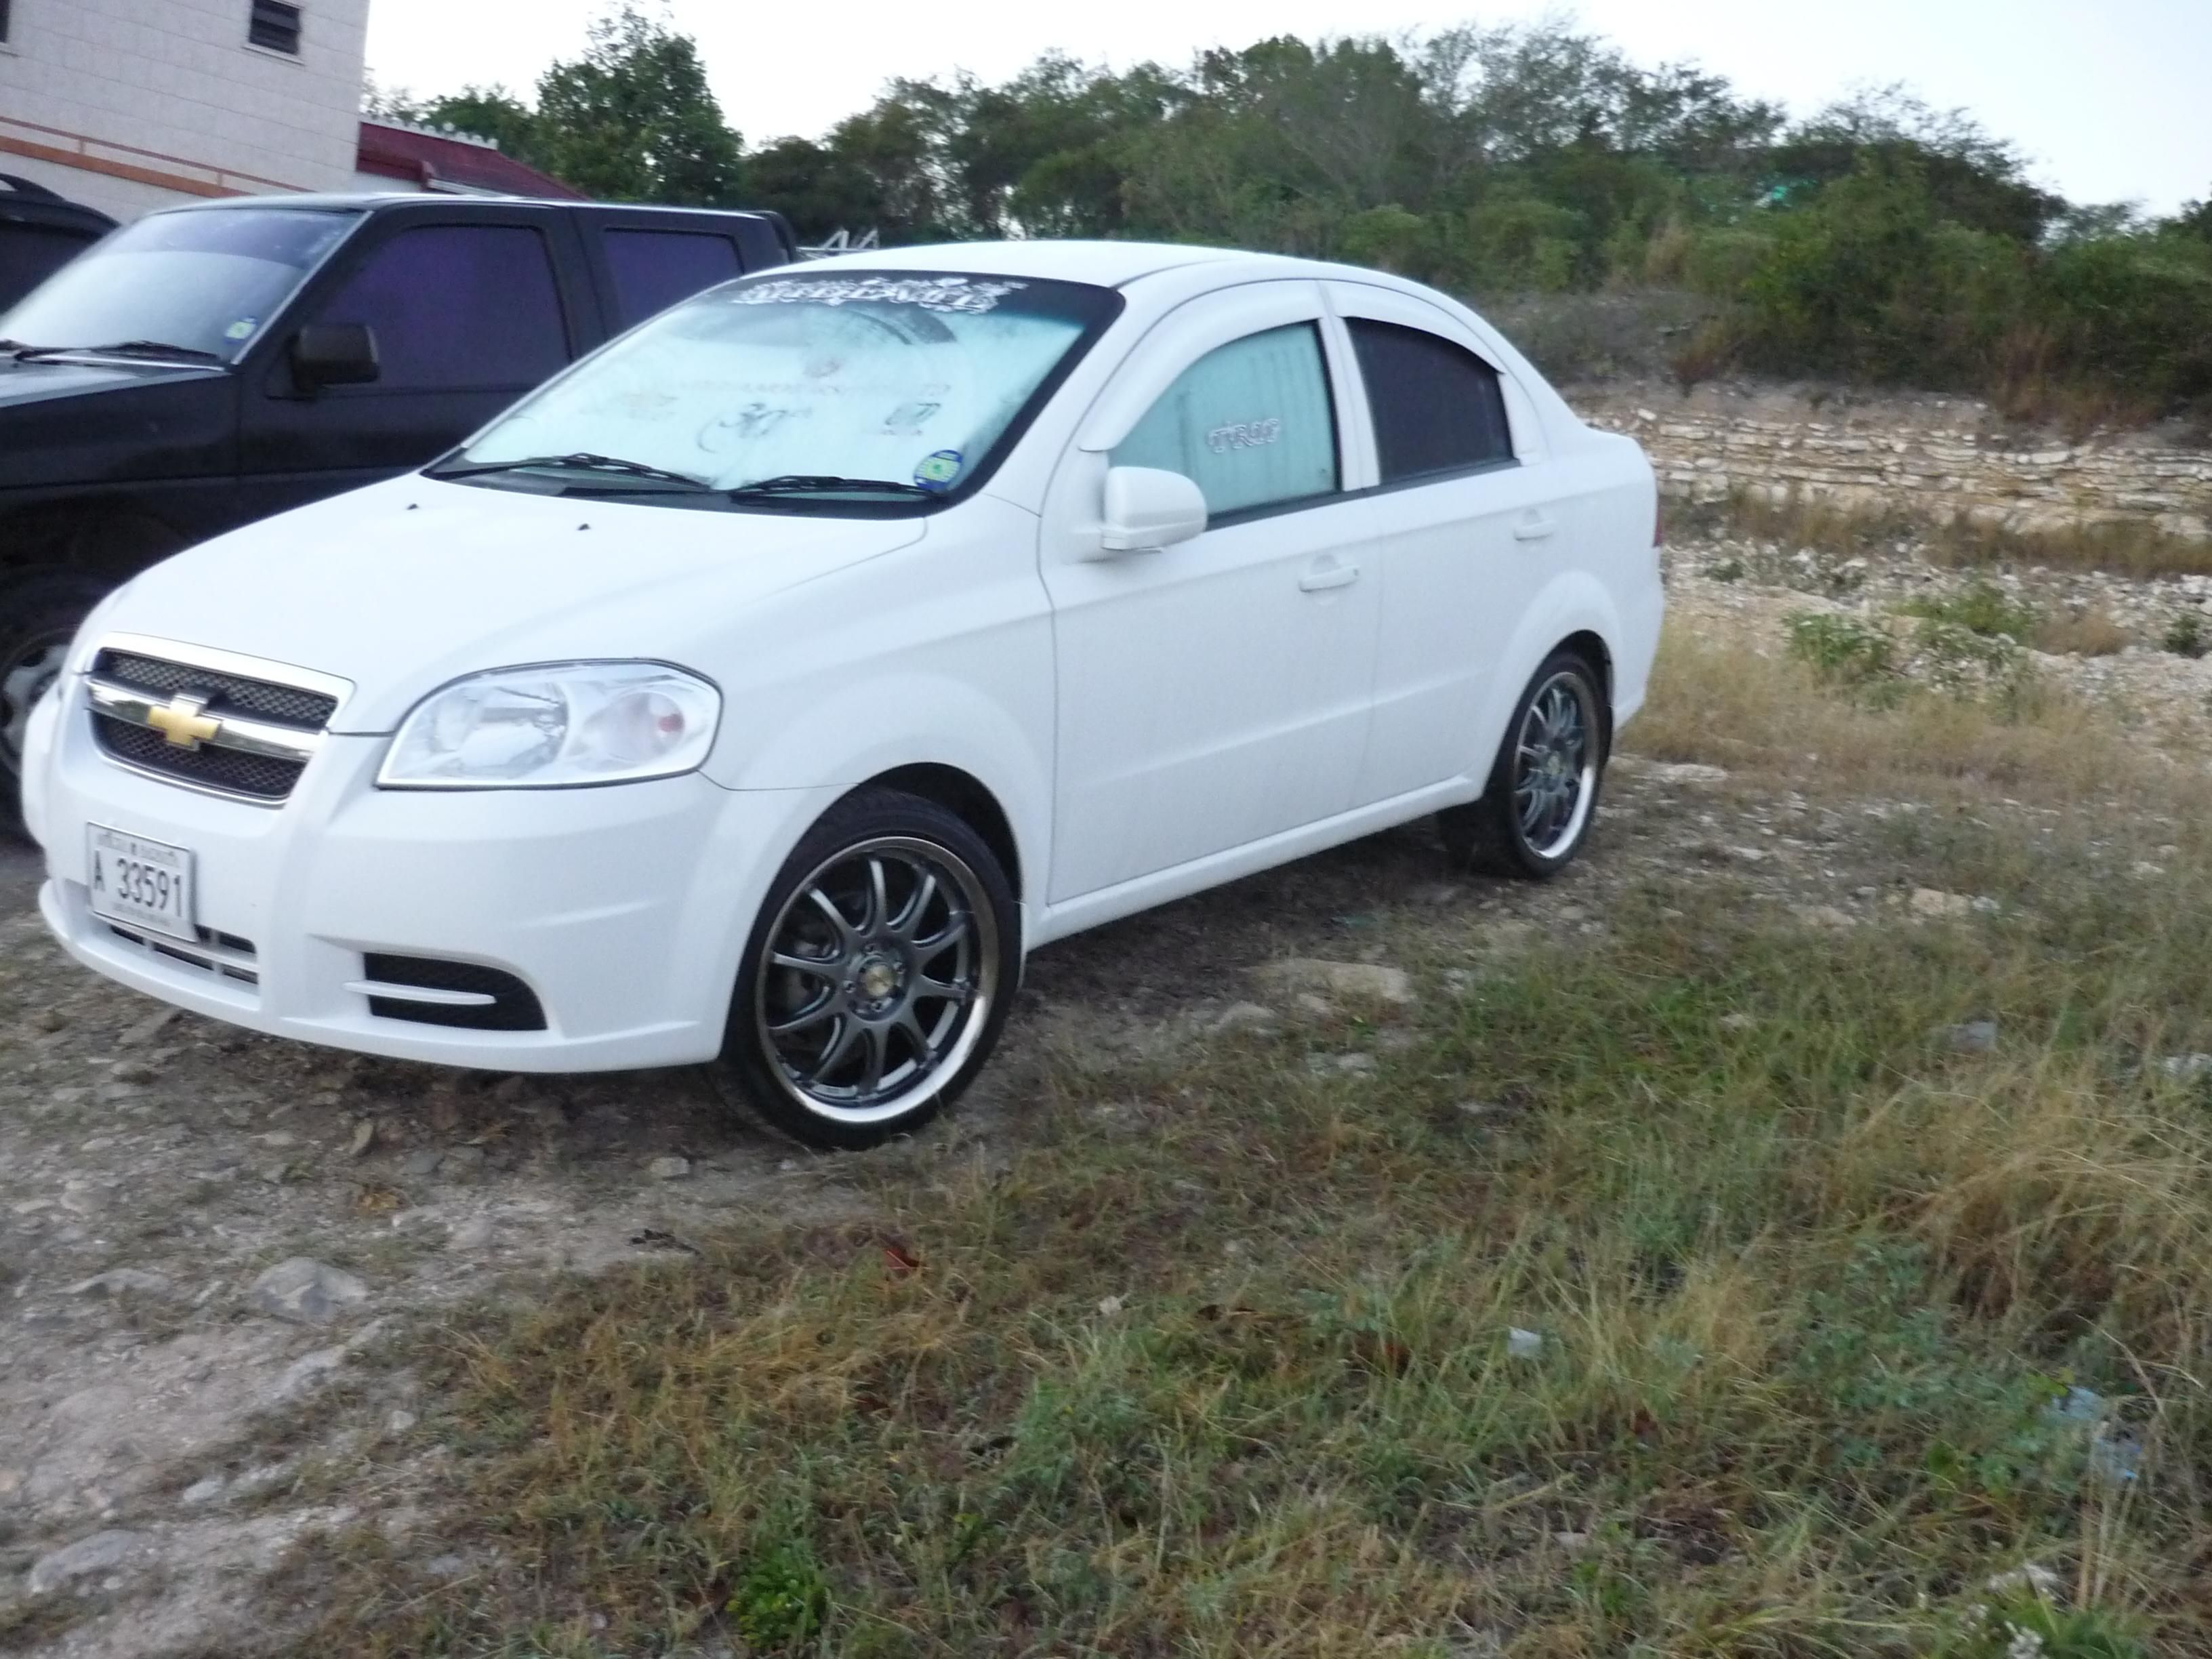 Awesome Vehicle 2009 Chevrolet Aveo On Lots Of Safety Features